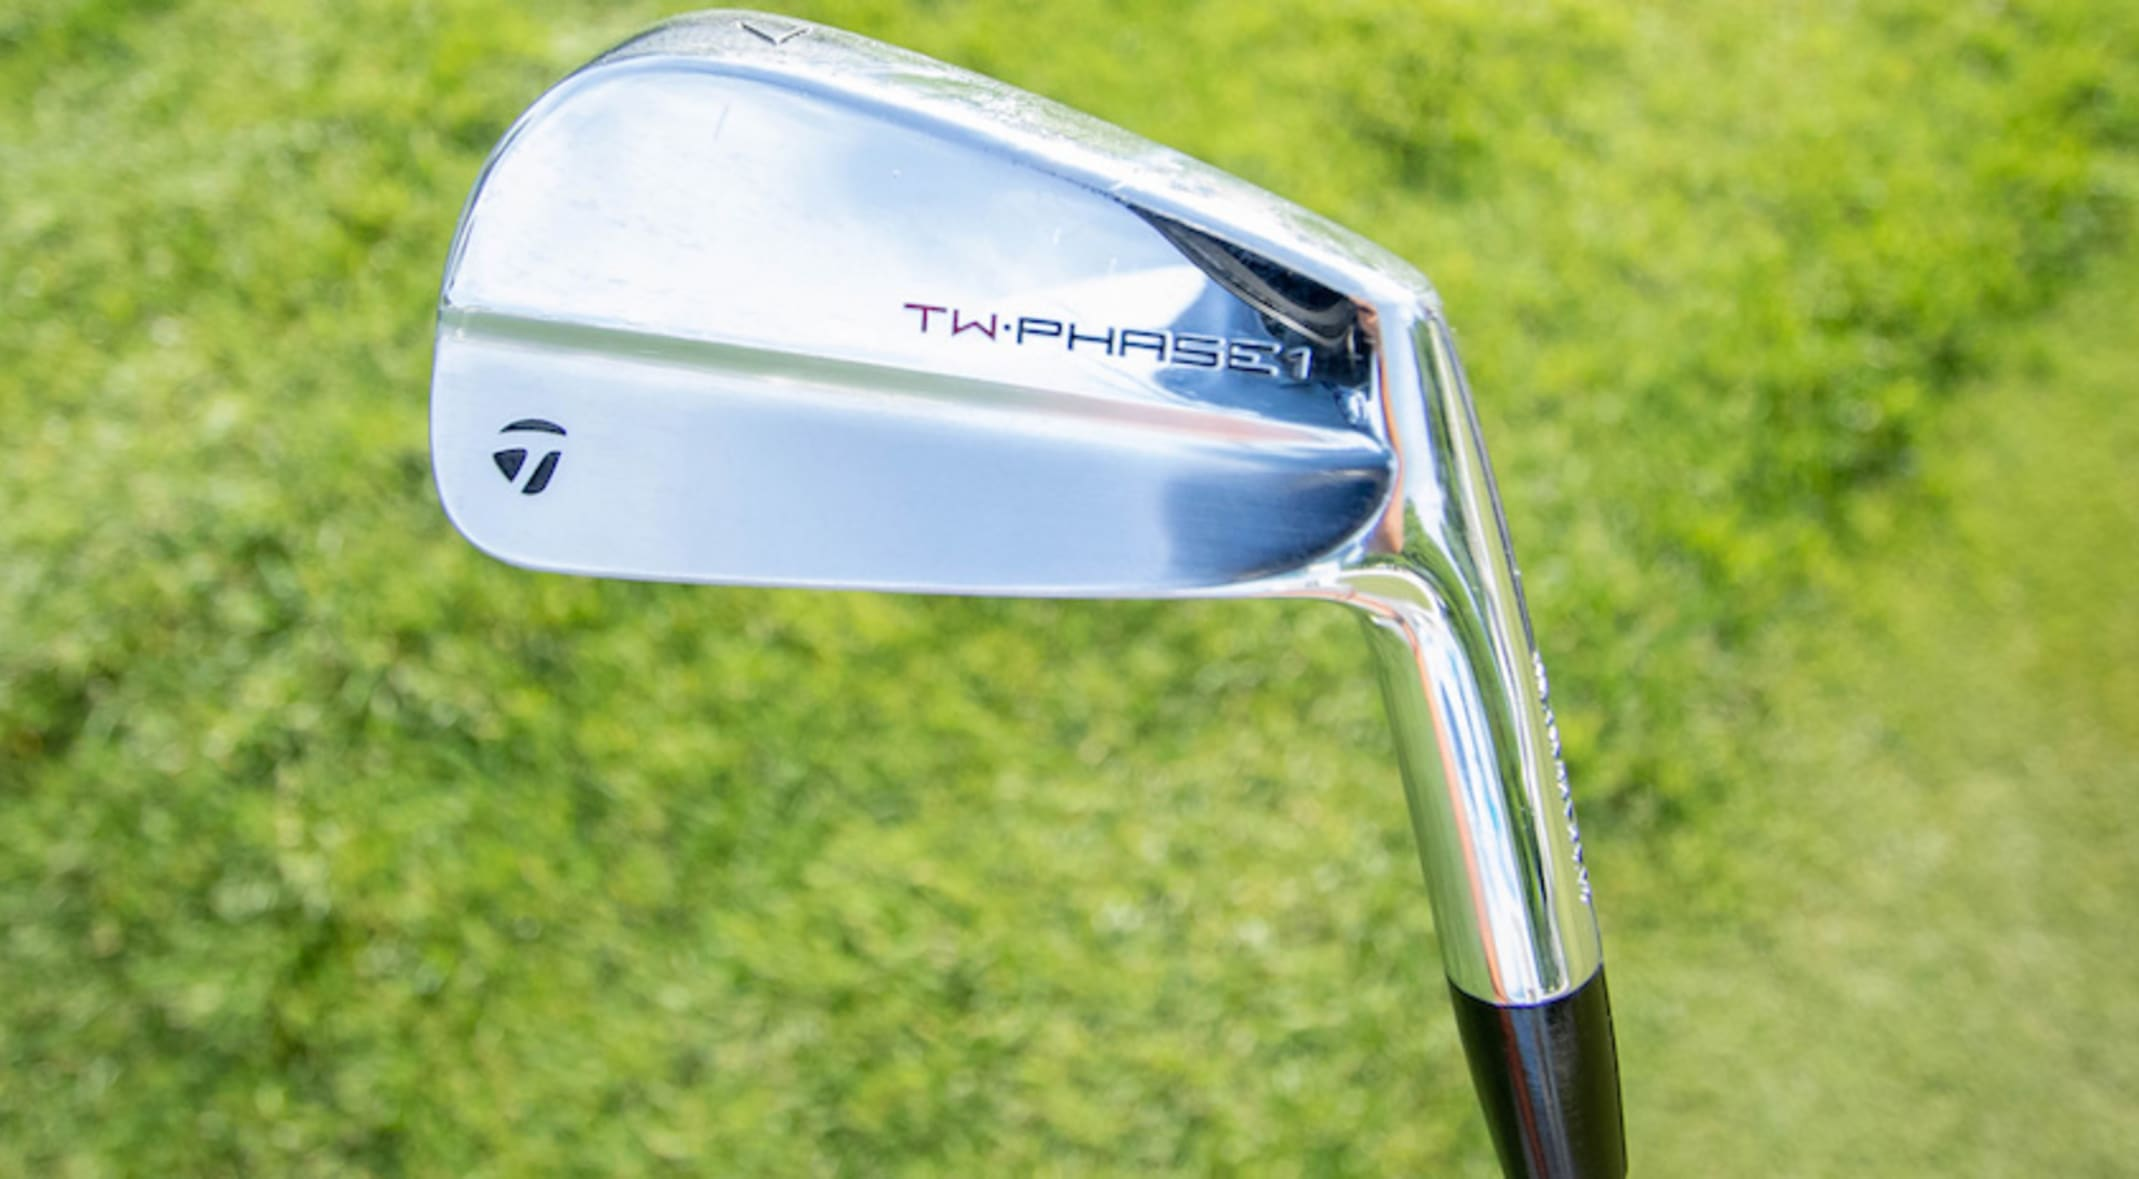 Tiger Woods adds new TaylorMade prototype irons at Wells Fargo